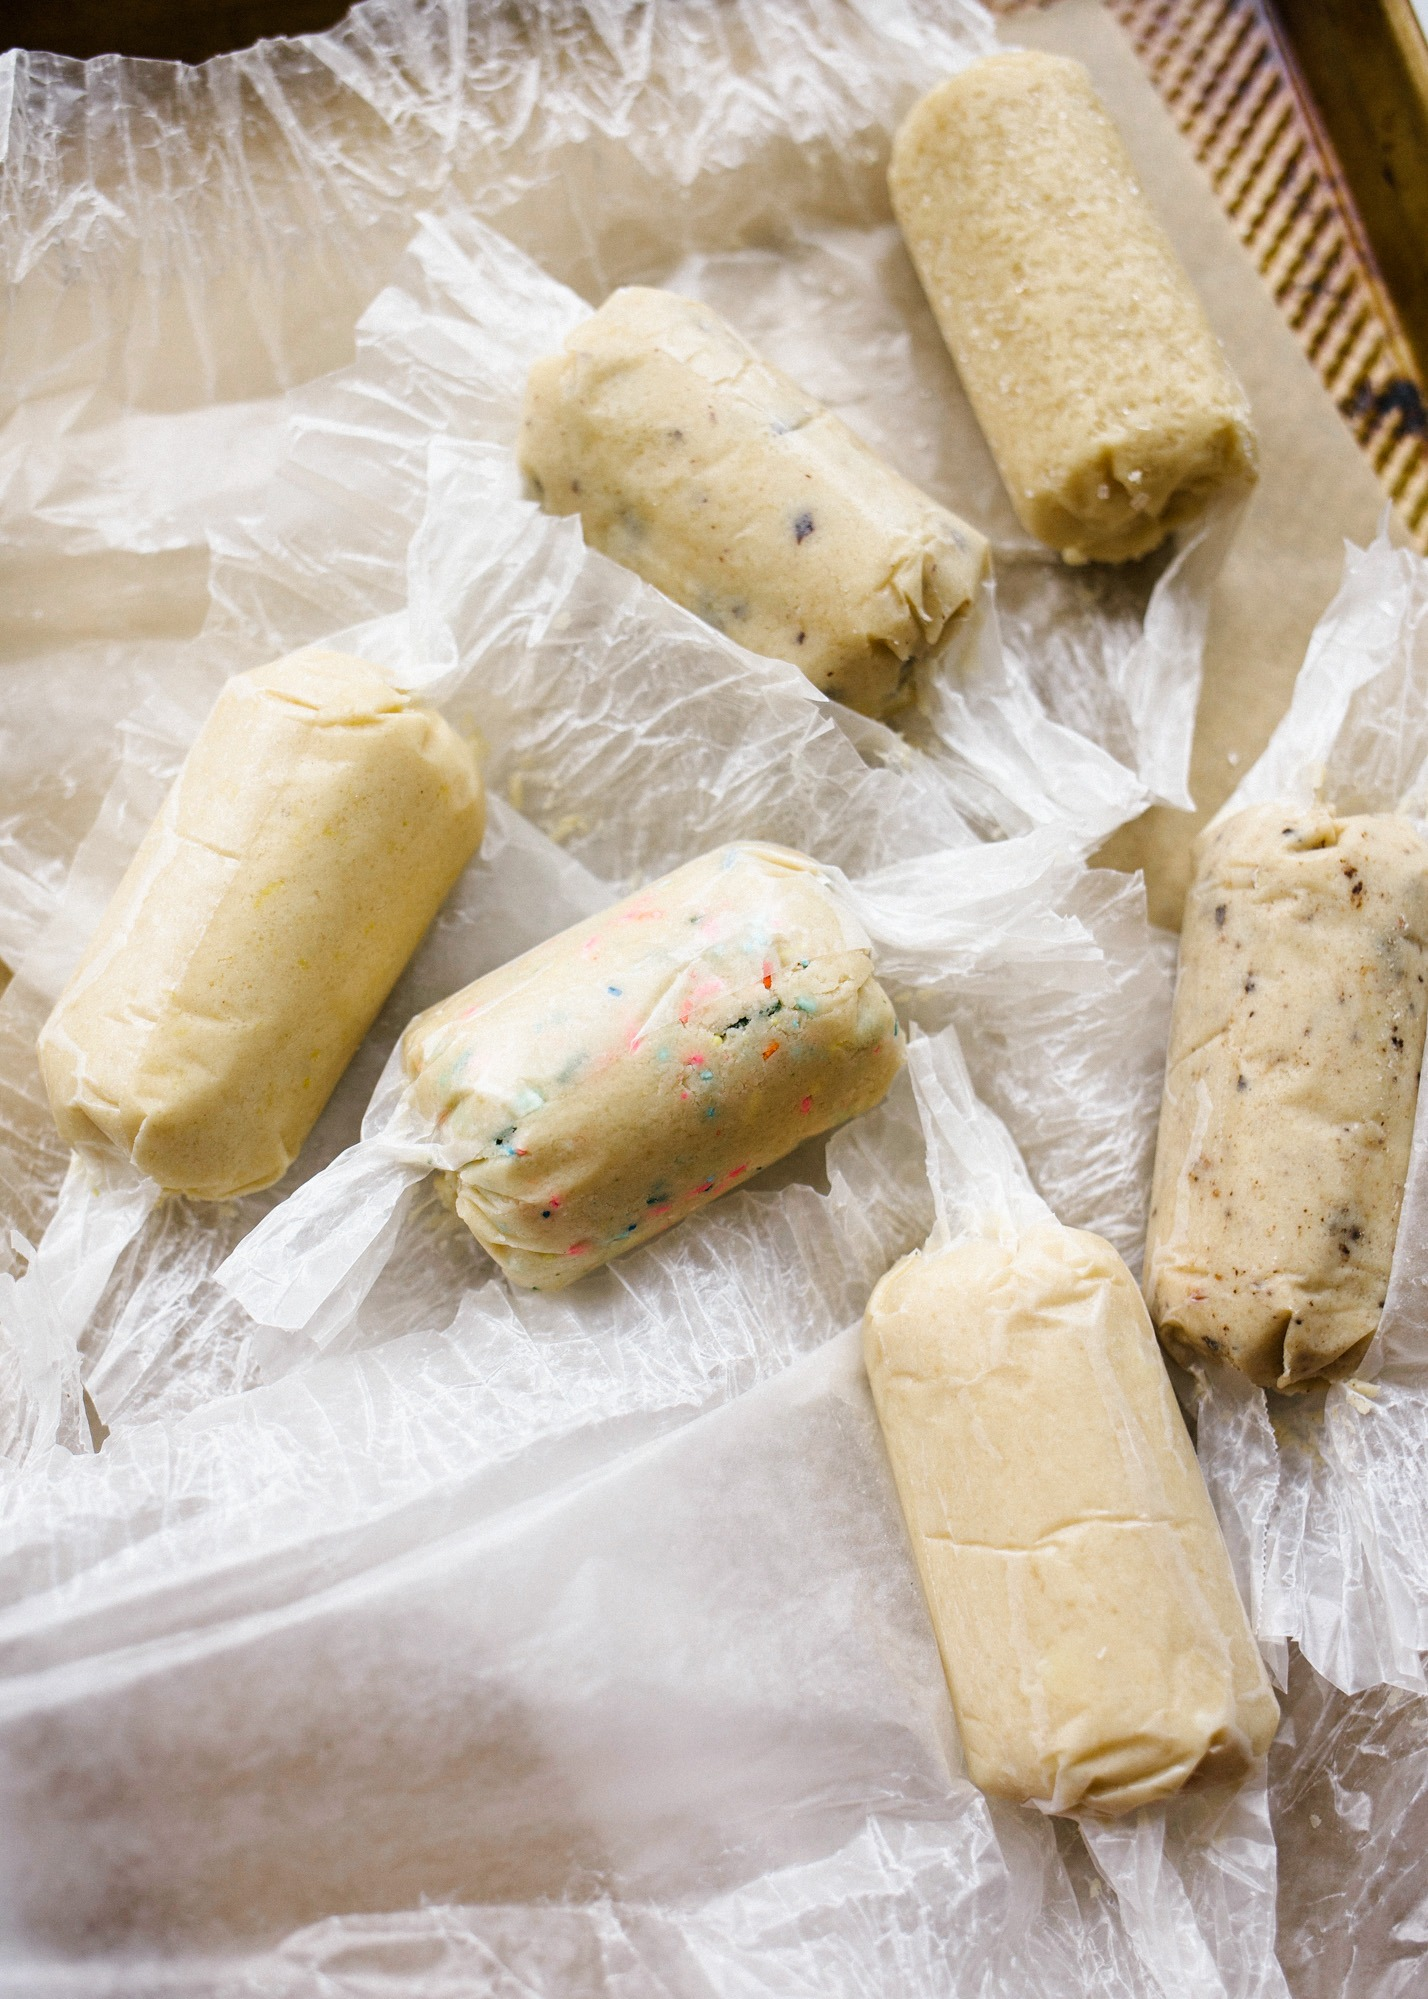 Shortbread Cookies by Wood and Spoon blog. These are simple all-butter shortbread cookies made quickly with tons of adaptions. Chocolate! Coffee! Lemon! Funfetti! Lavender! White Chocolate! Peppermint! The possibilities for these shortbread cookies are endless. Learn how easy it is to make your own adaptable shortbread cookies on thewoodandspoon.com